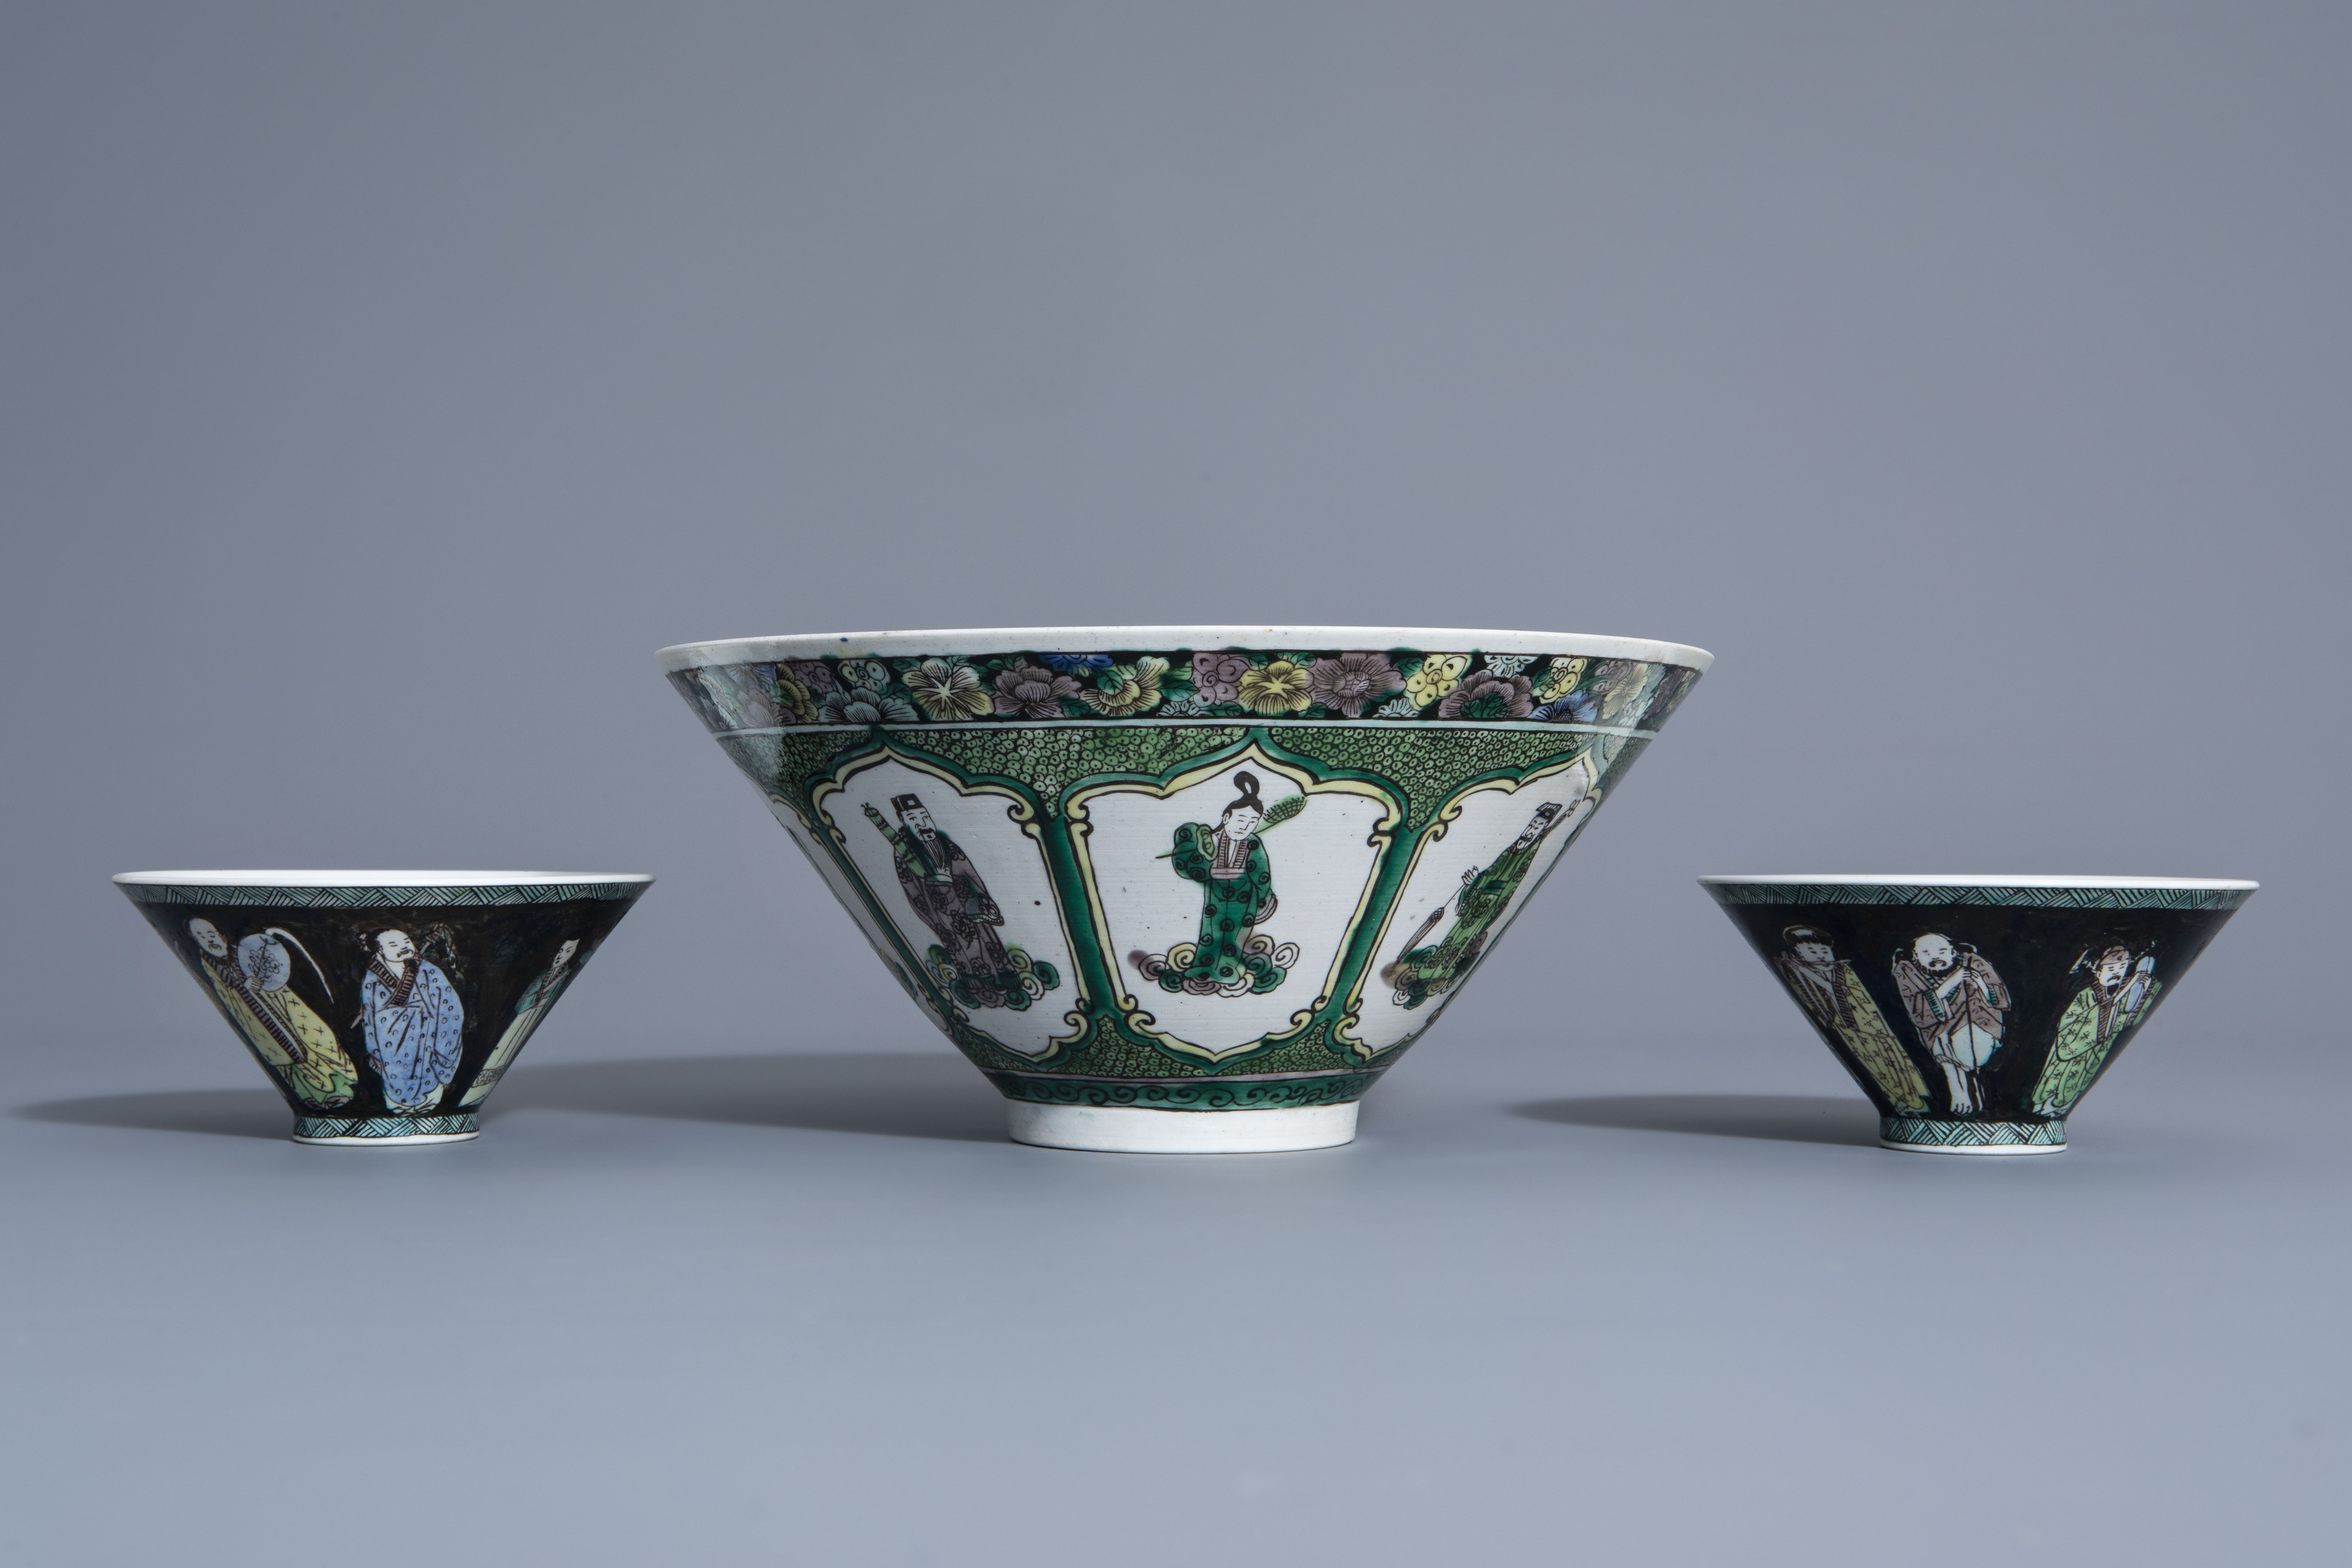 Three Chinese verte biscuit bowls with figurative design, Republic, 20th C.